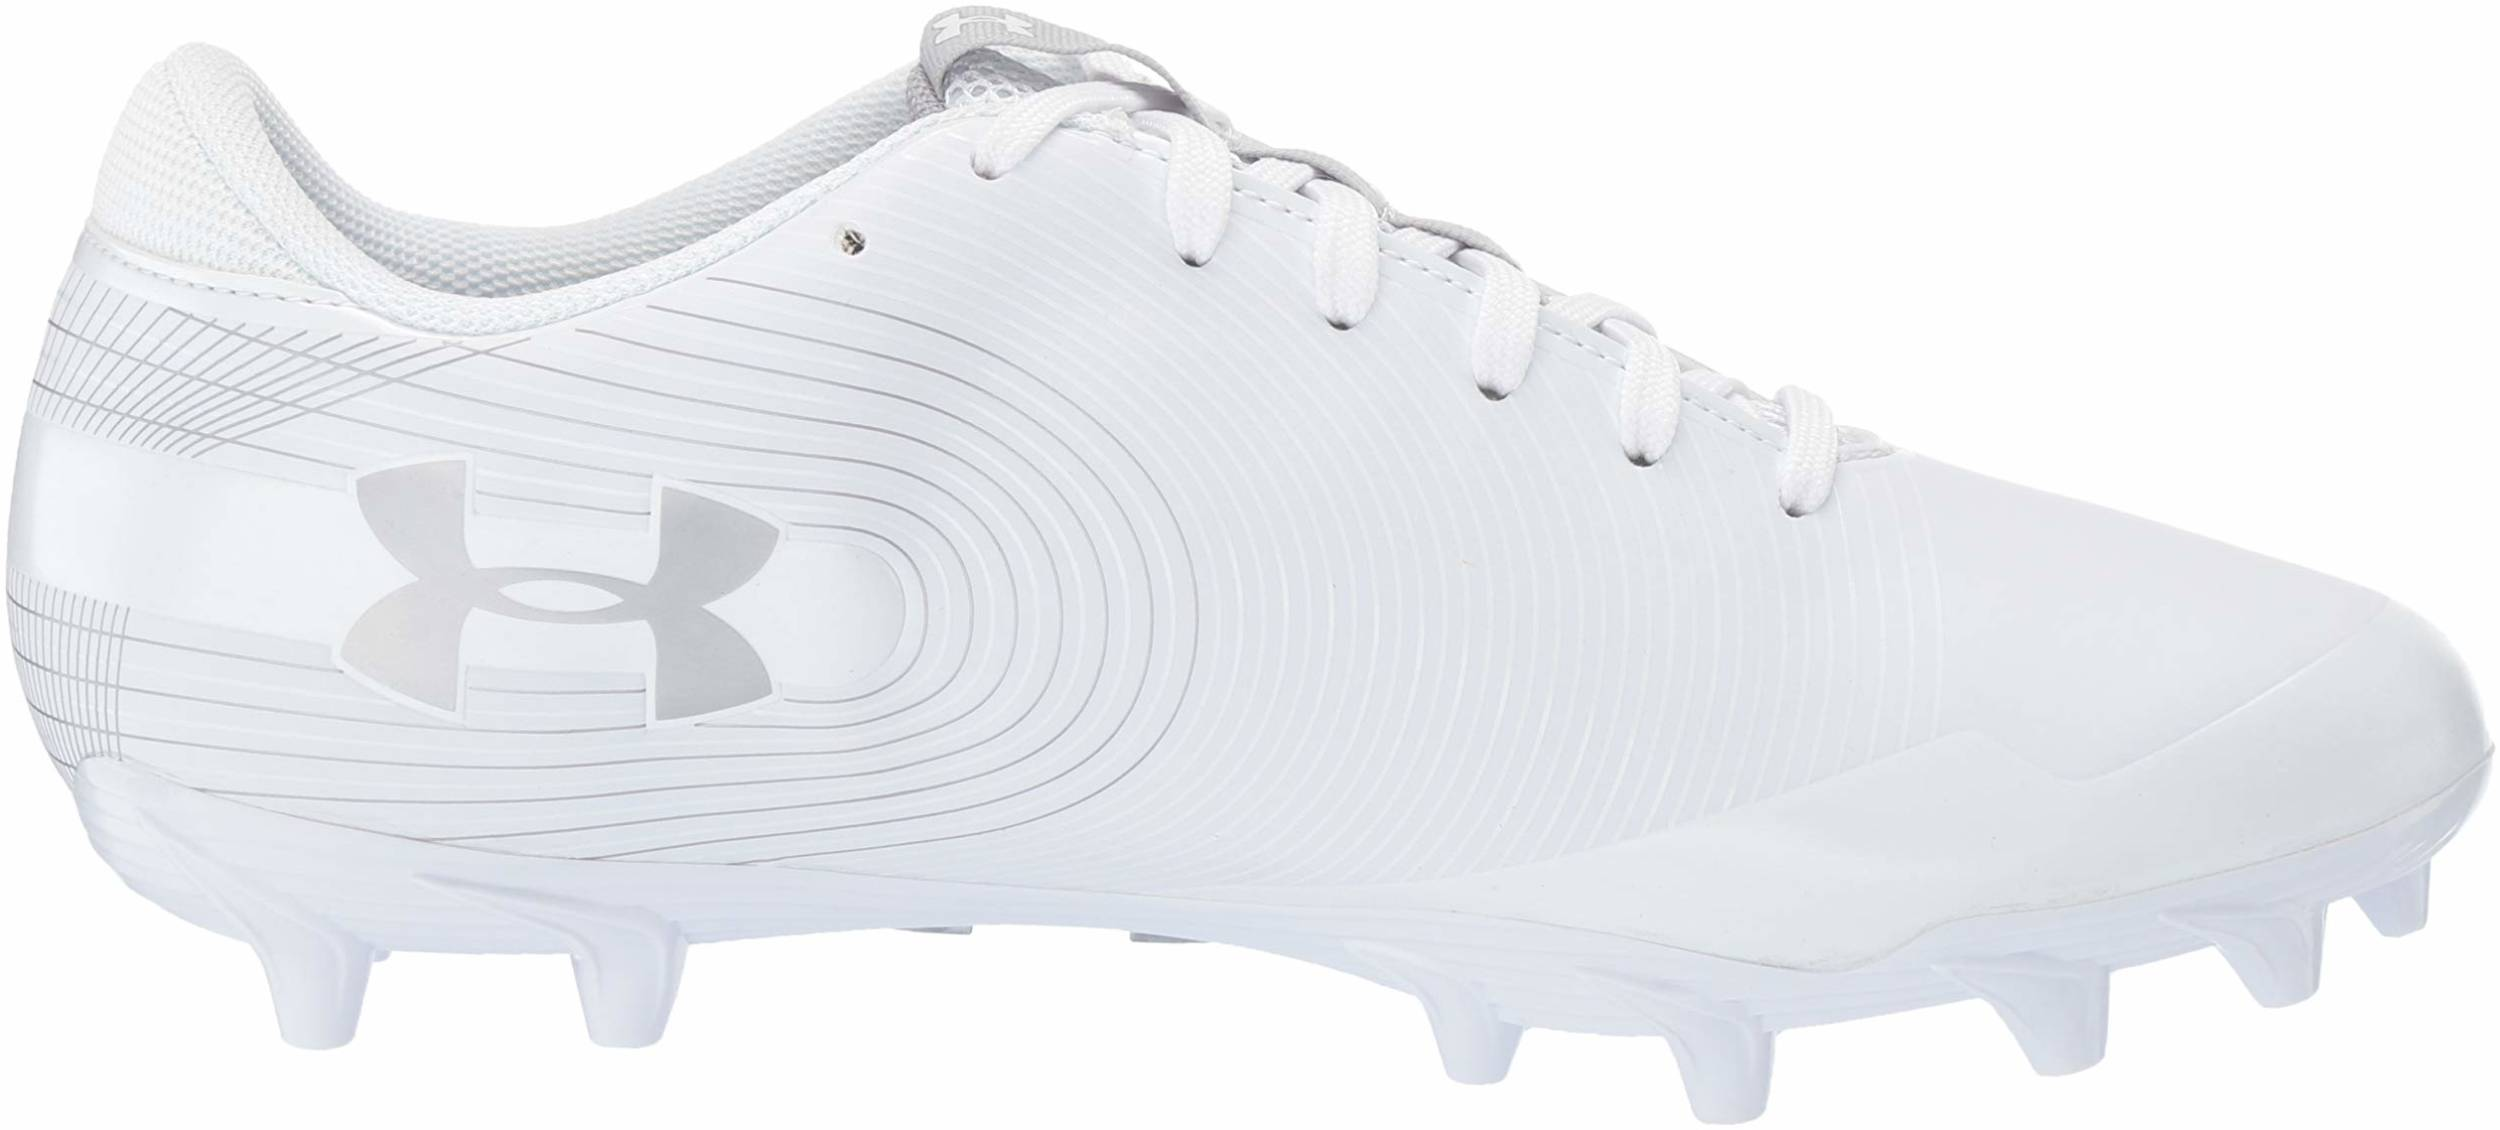 Save 16 On White Under Armour Football Cleats 4 Models In Stock Runrepeat